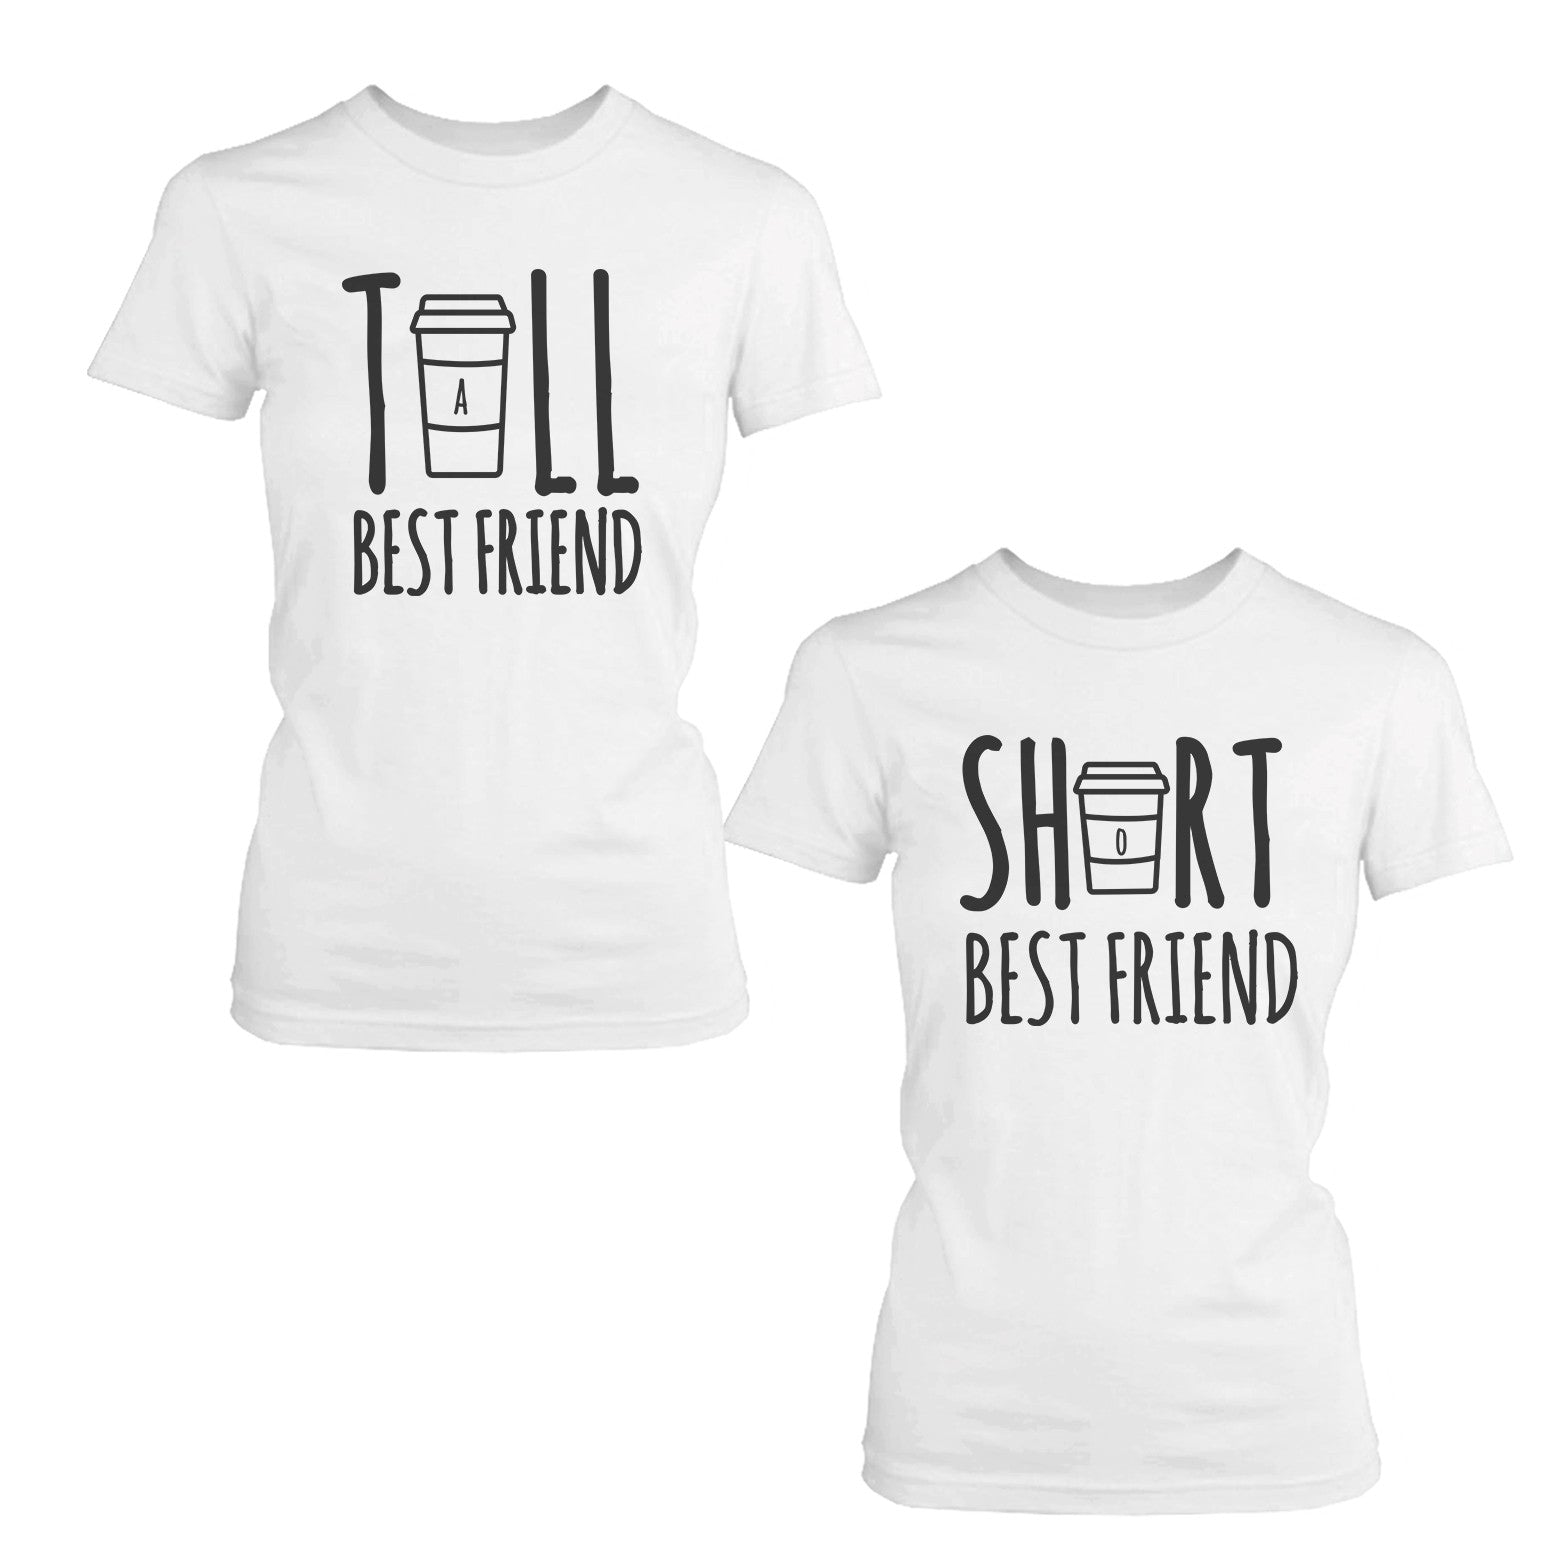 Best Friend Quotes For Shirts: Best Friends T Shirts